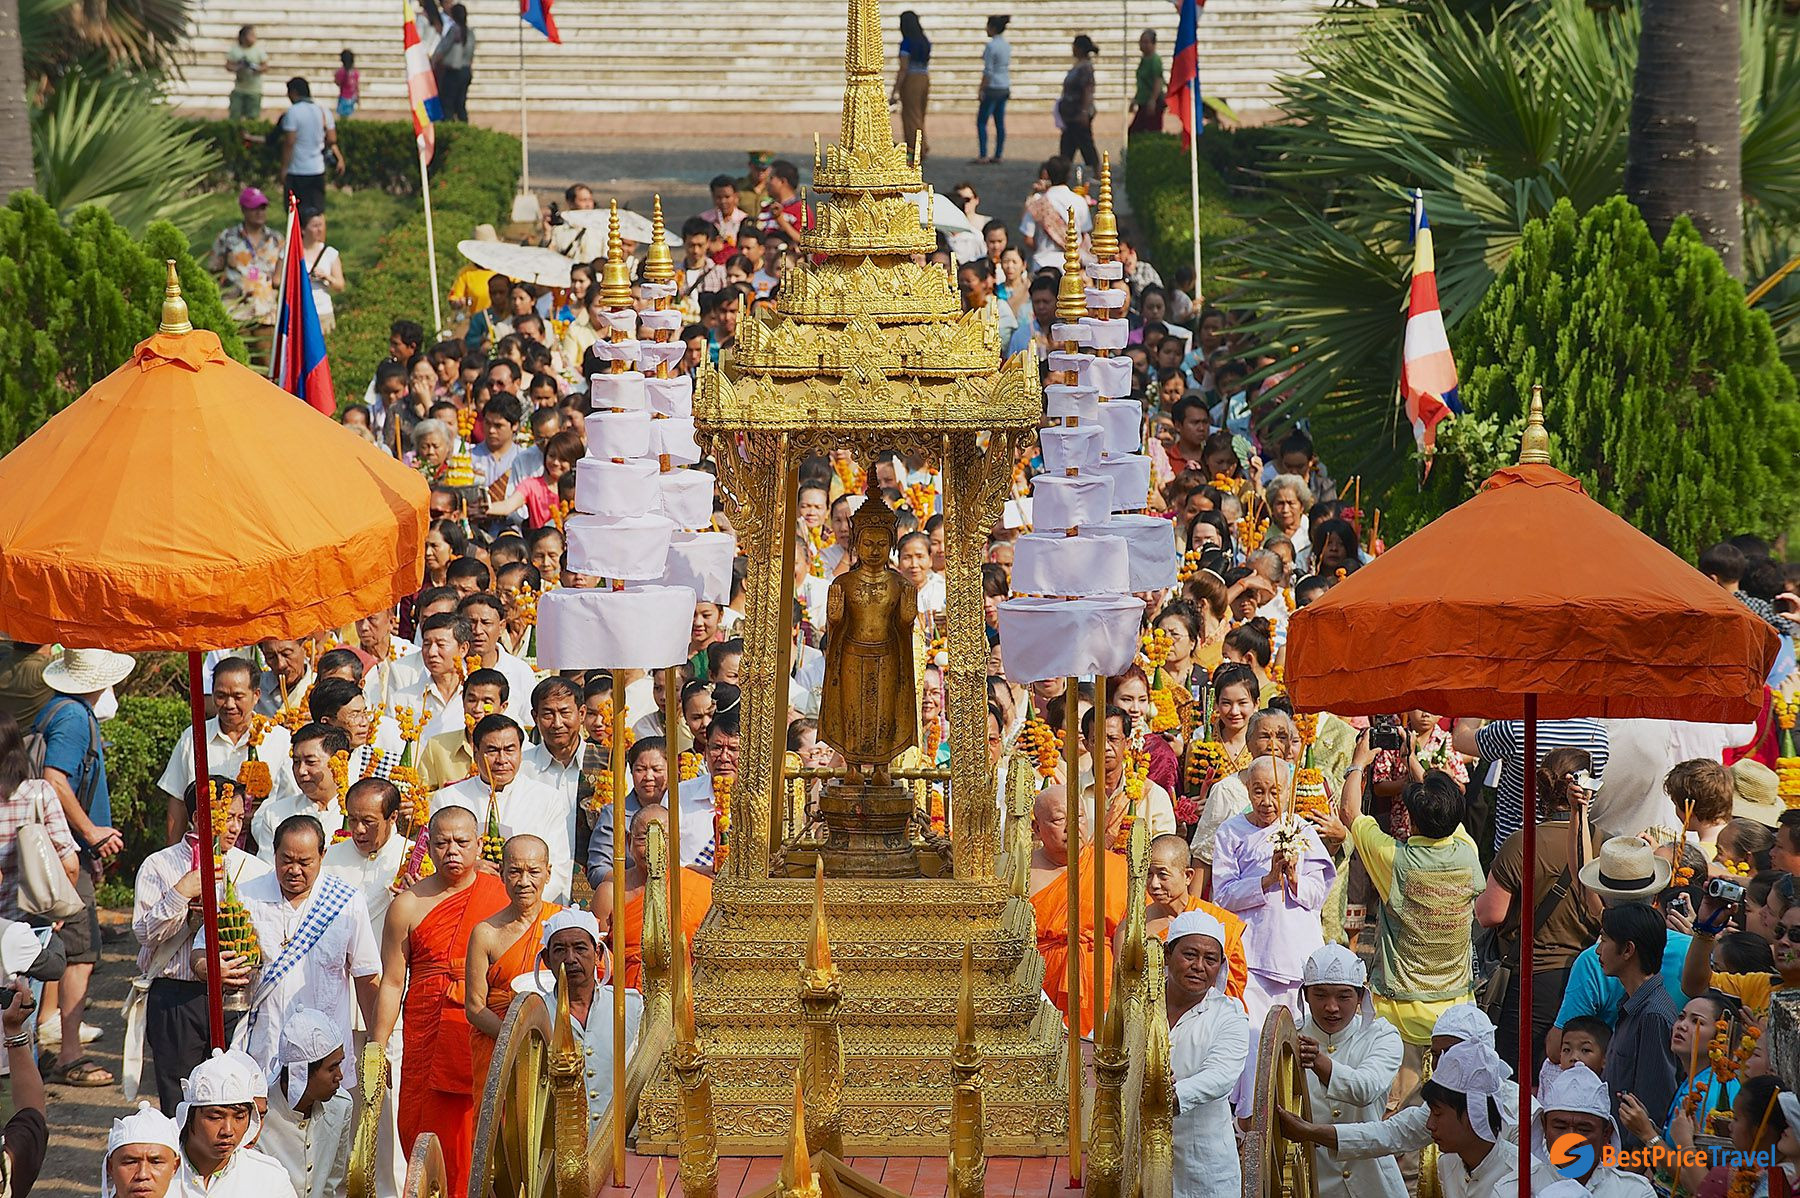 Luang Prabang is the most exciting place to celebrate Boun Pi Mai in Laos